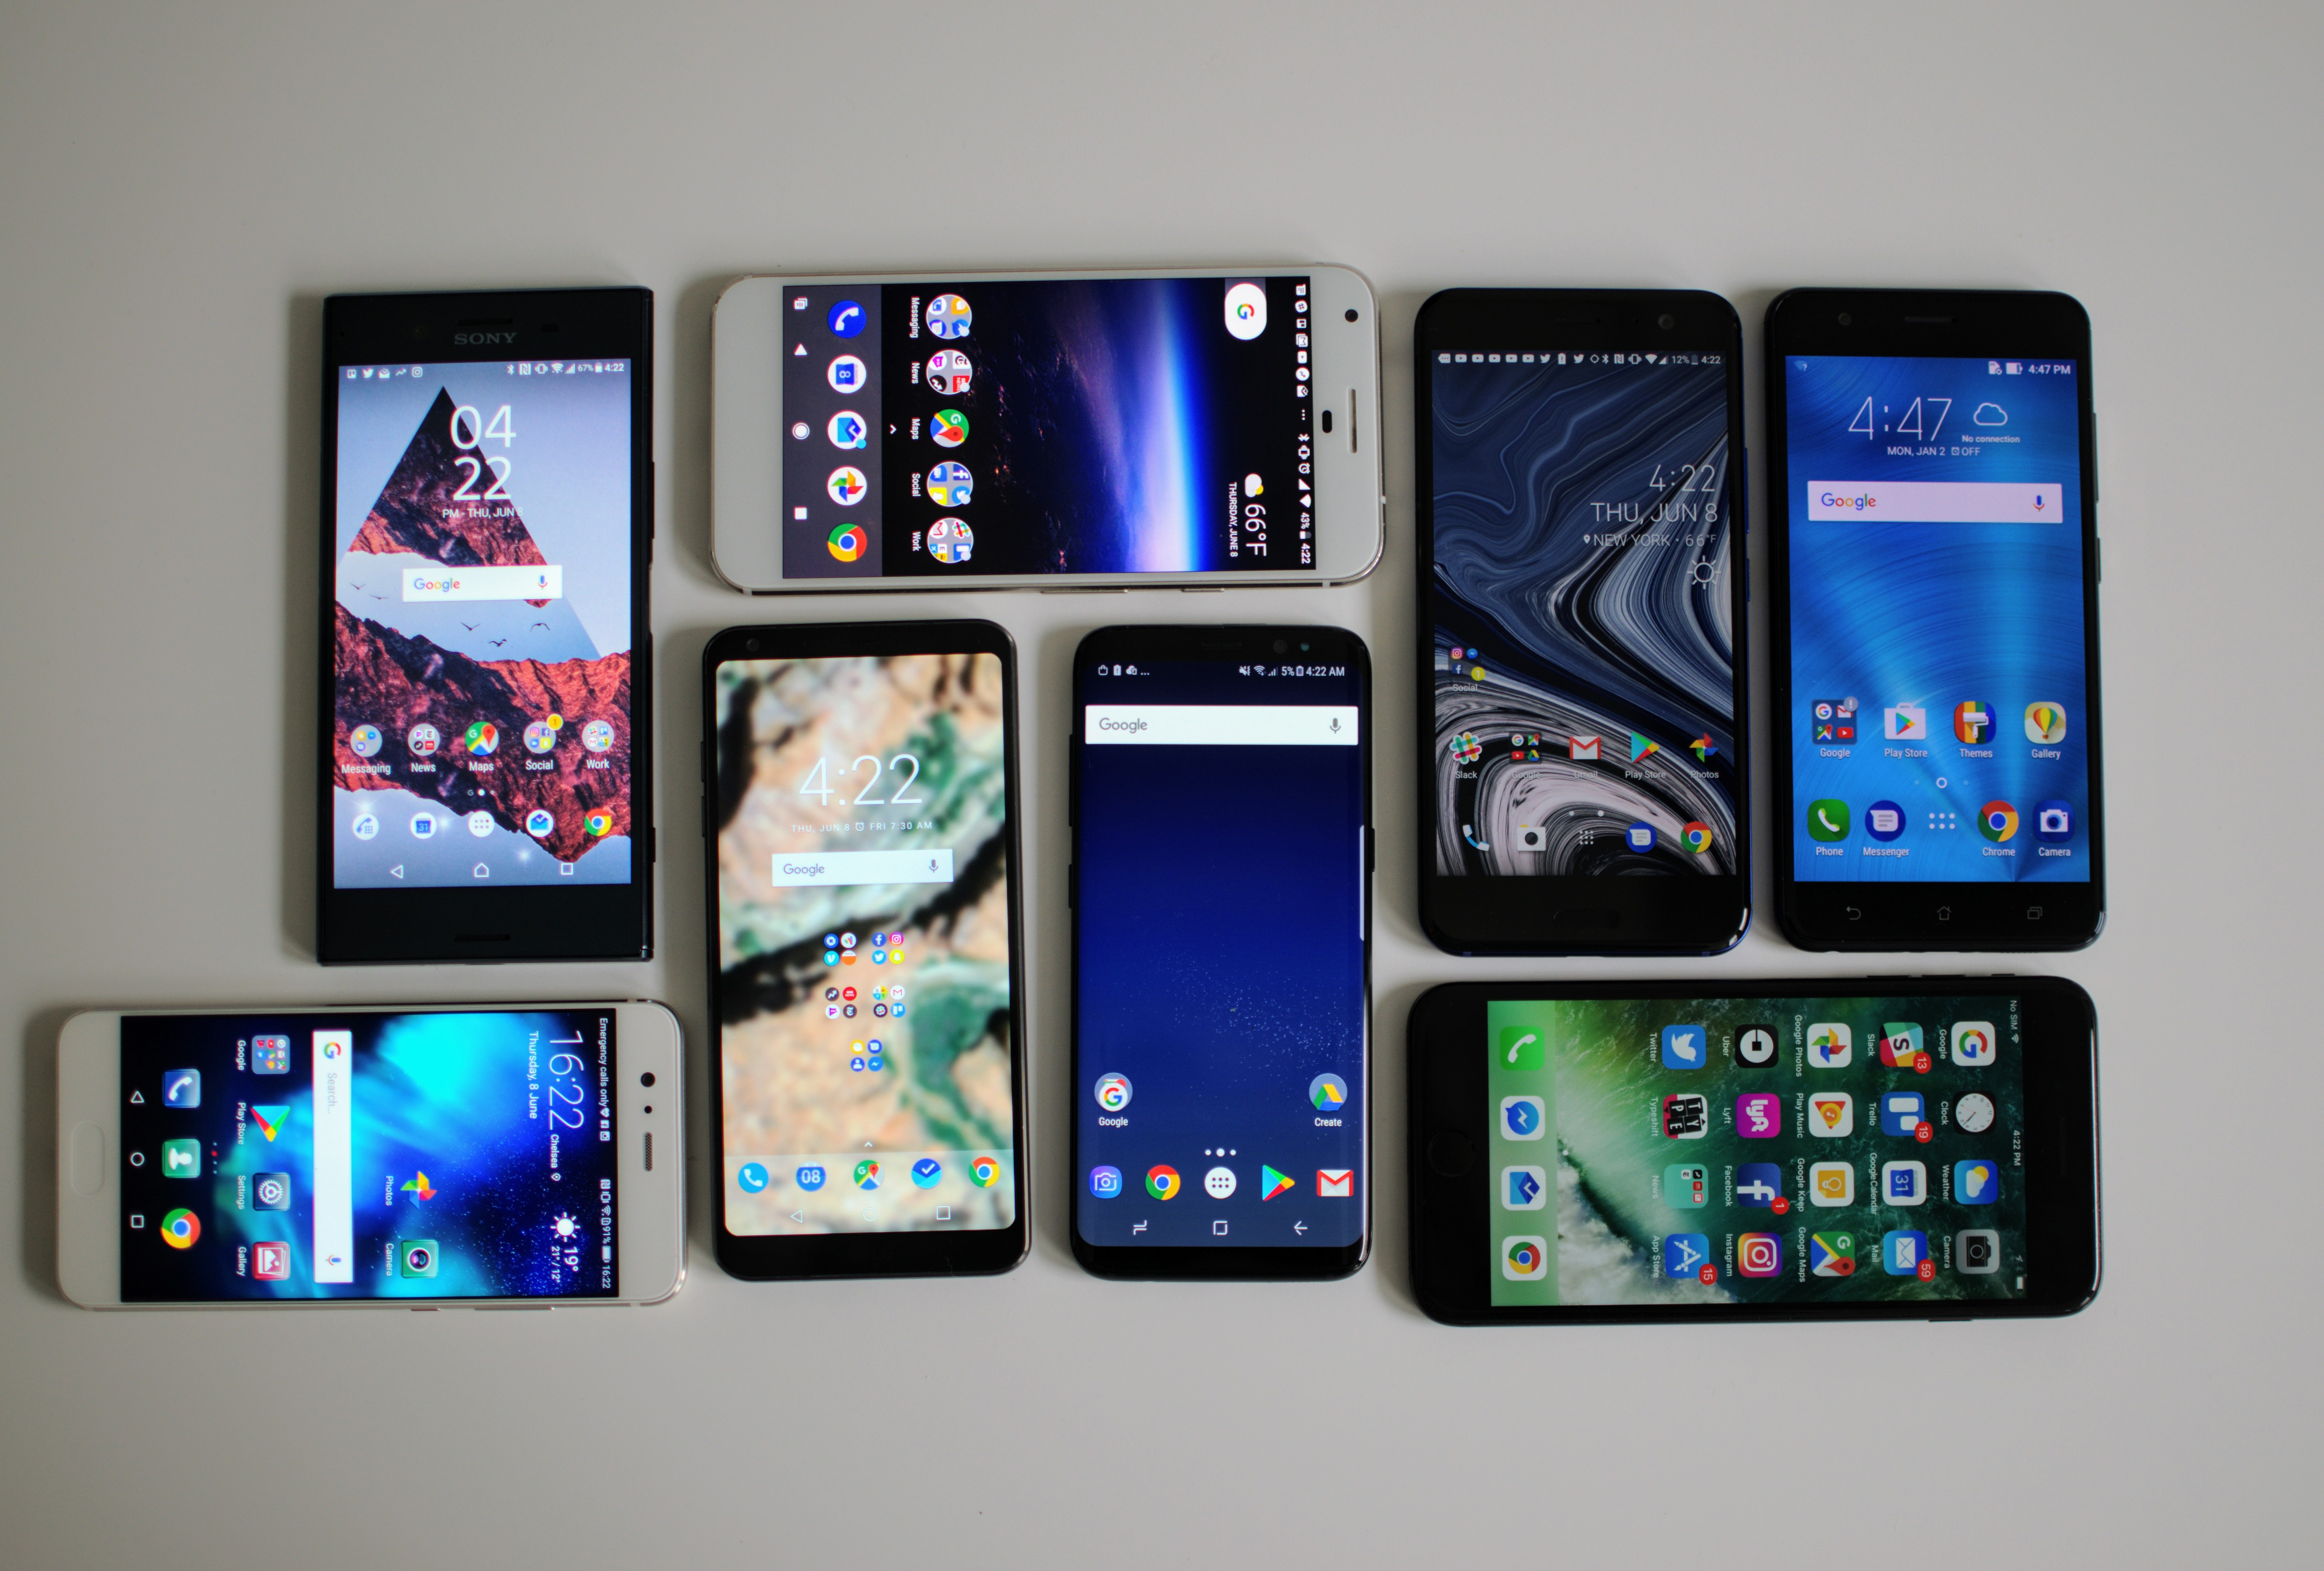 Comparing Smartphones To Find The Most Bezel-less Design